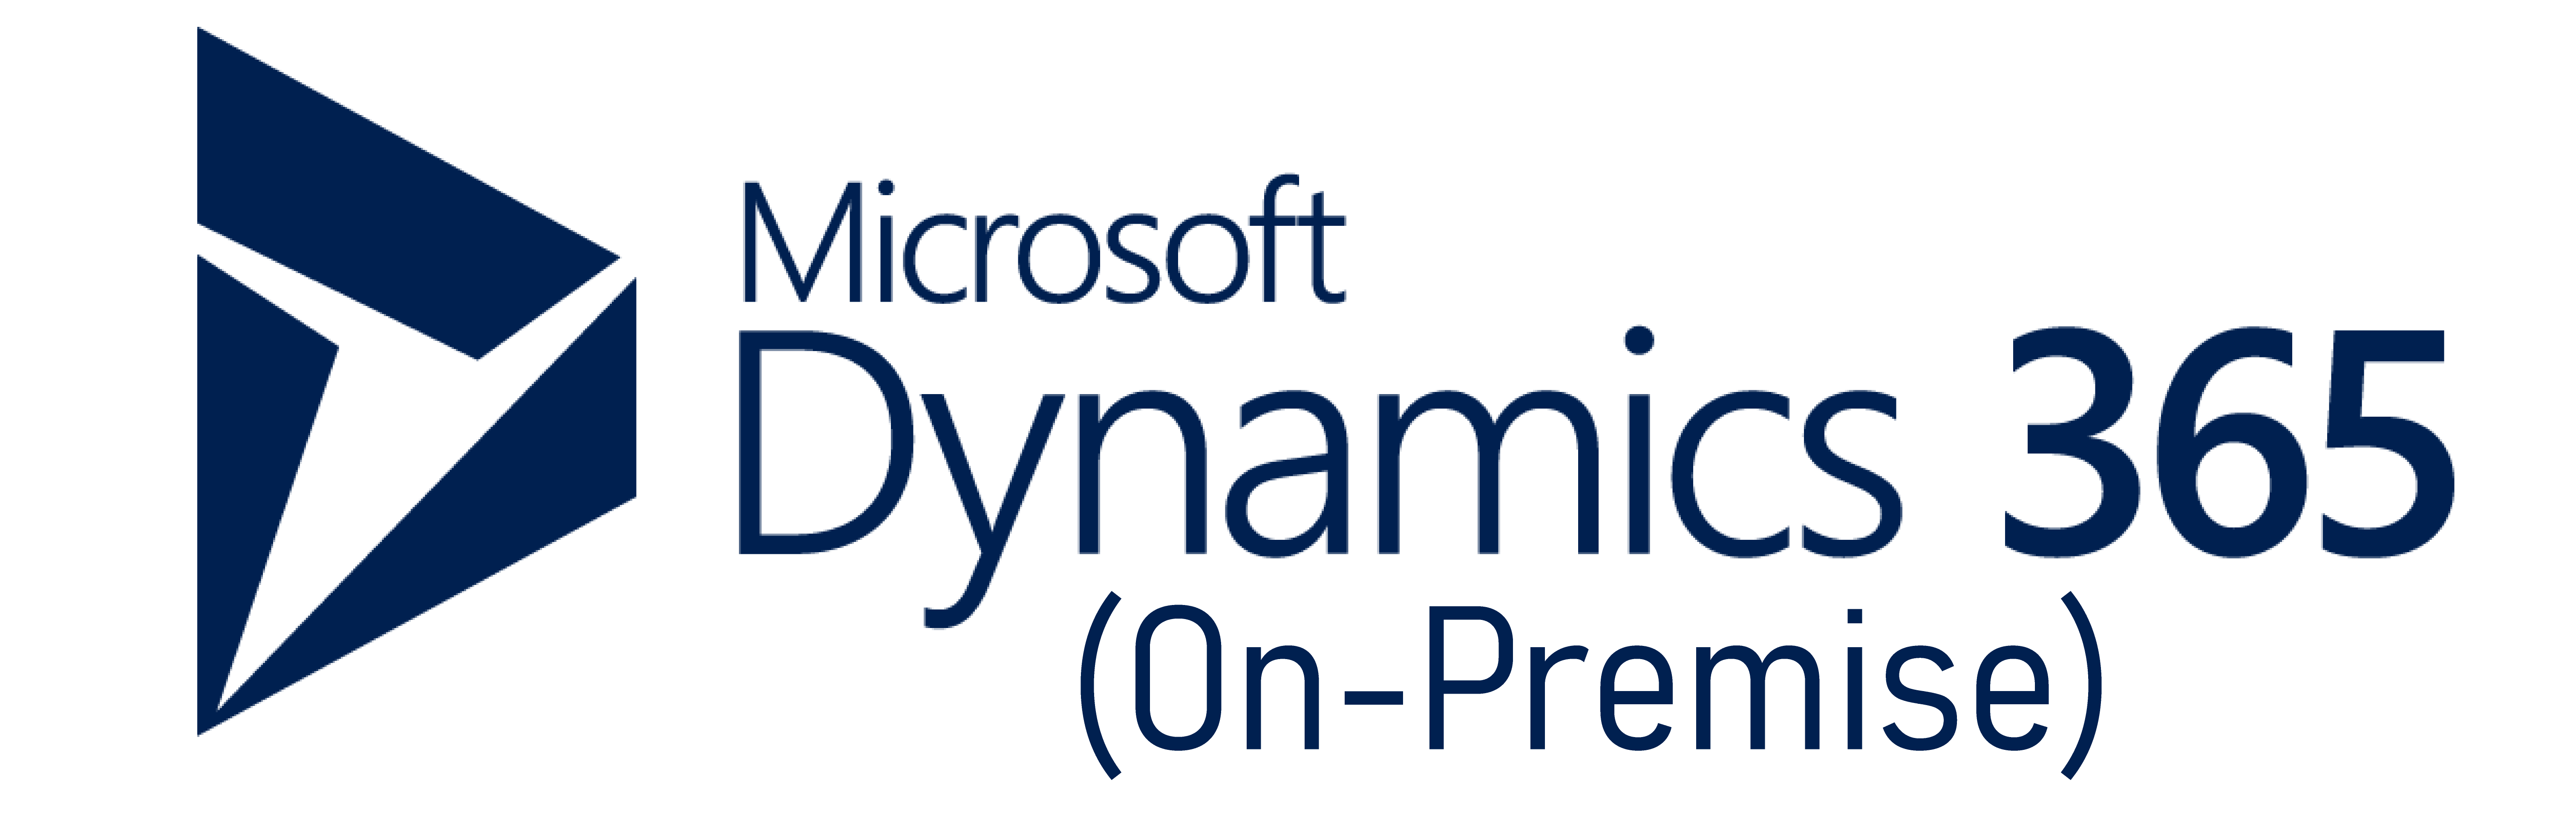 Microsoft Dynamics On-Premise